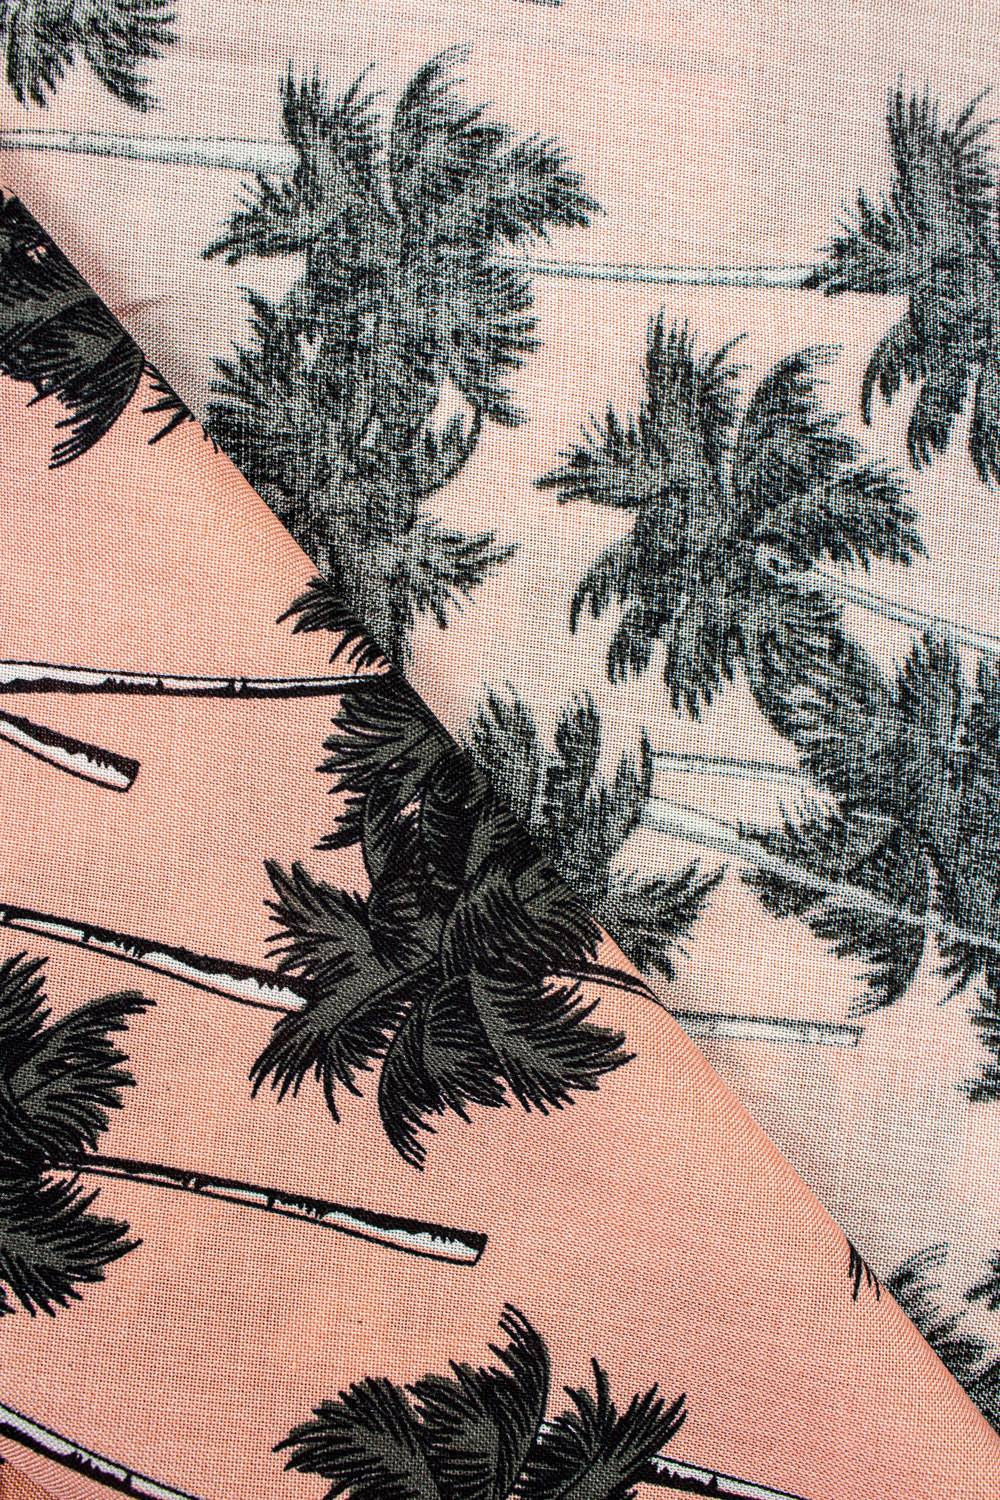 Fabric - Viscose - Salmon Pink With Palm Trees - 140 cm - 130 g/m2